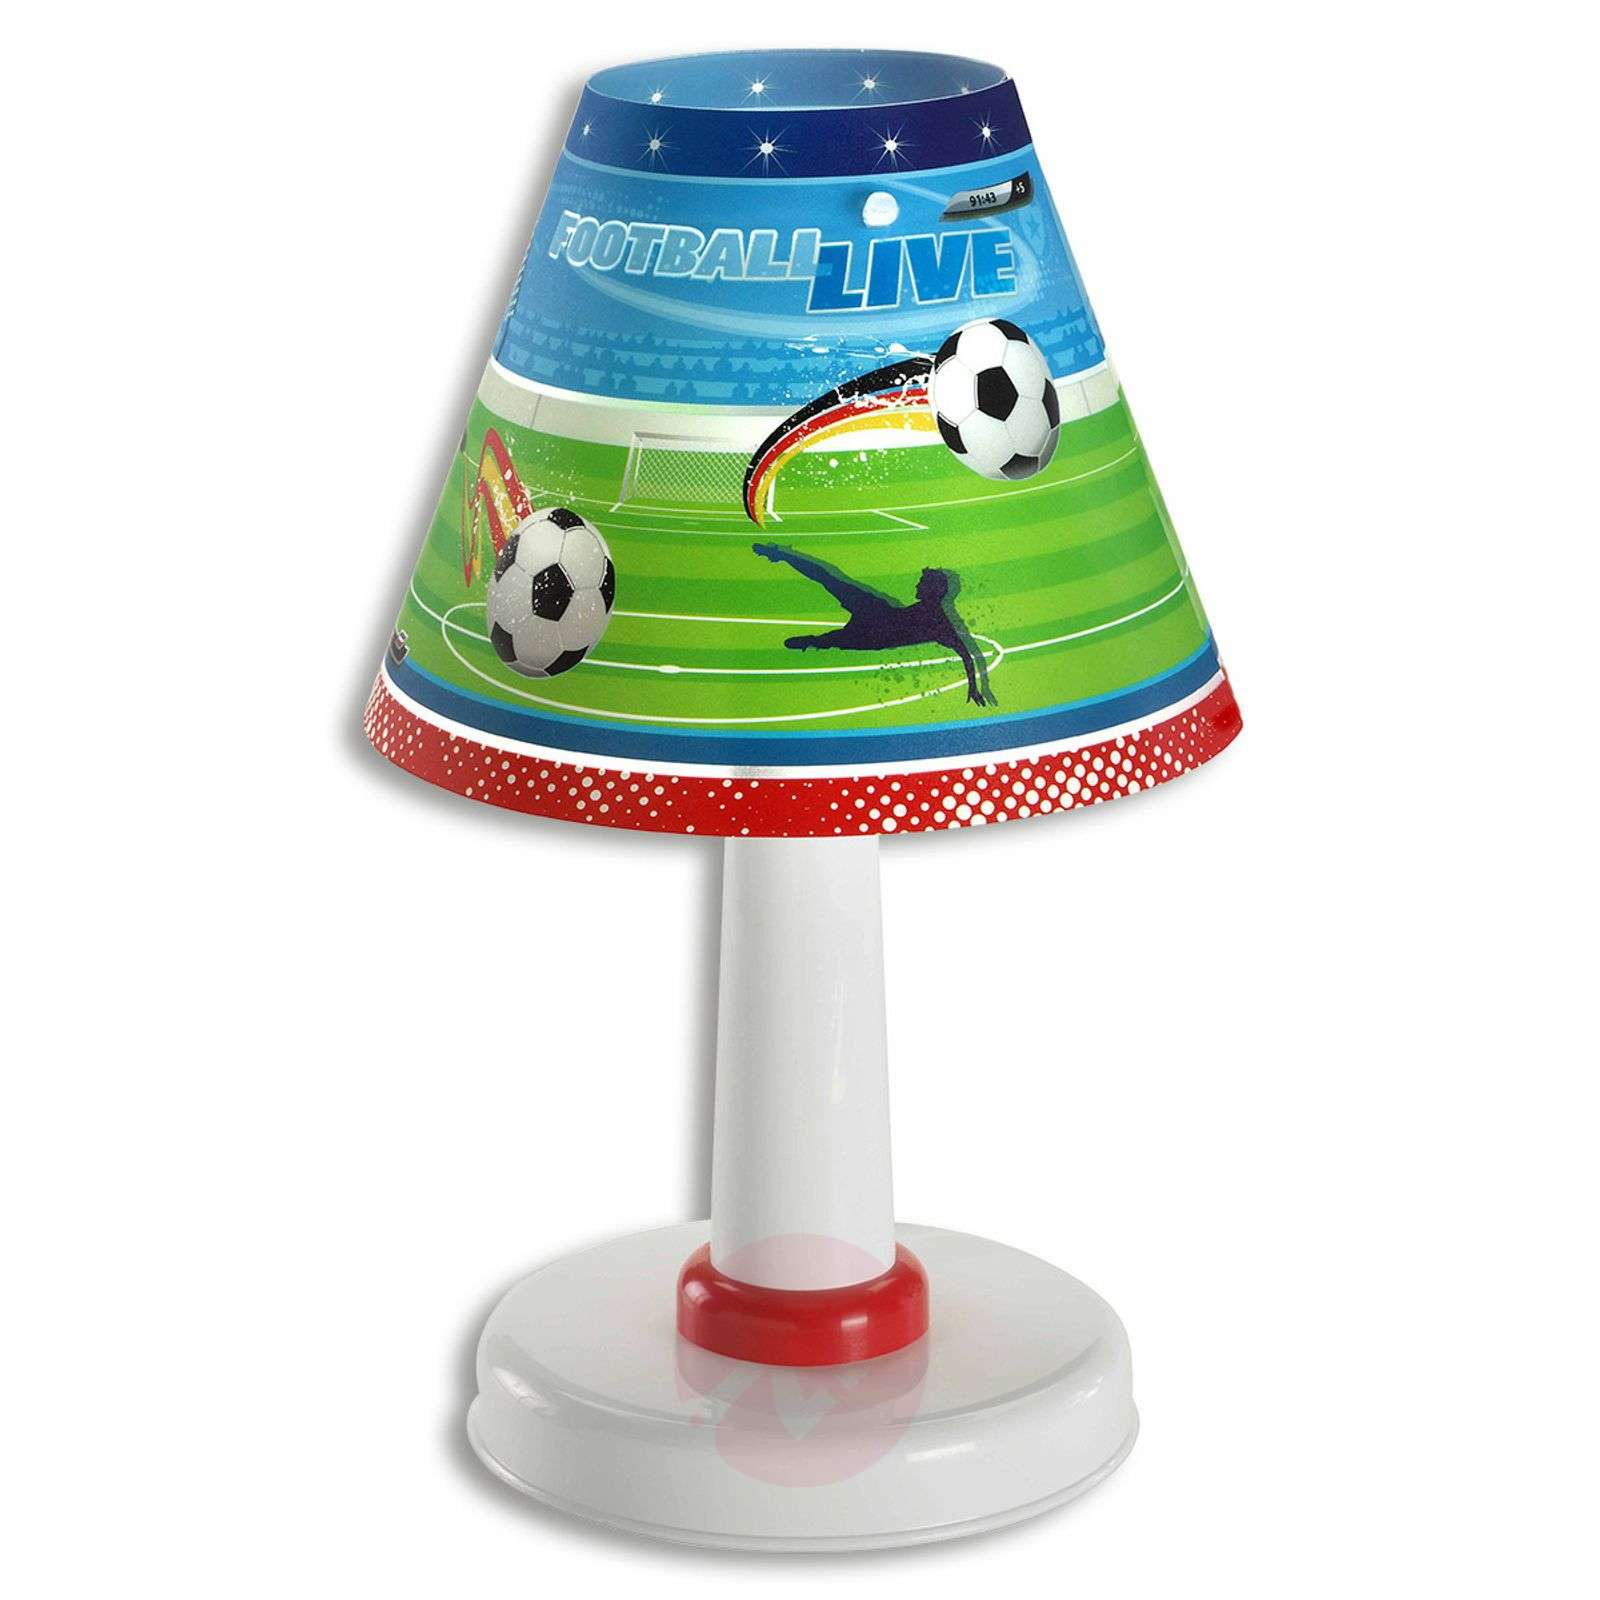 Childrens room table lamp Football-2507276-01